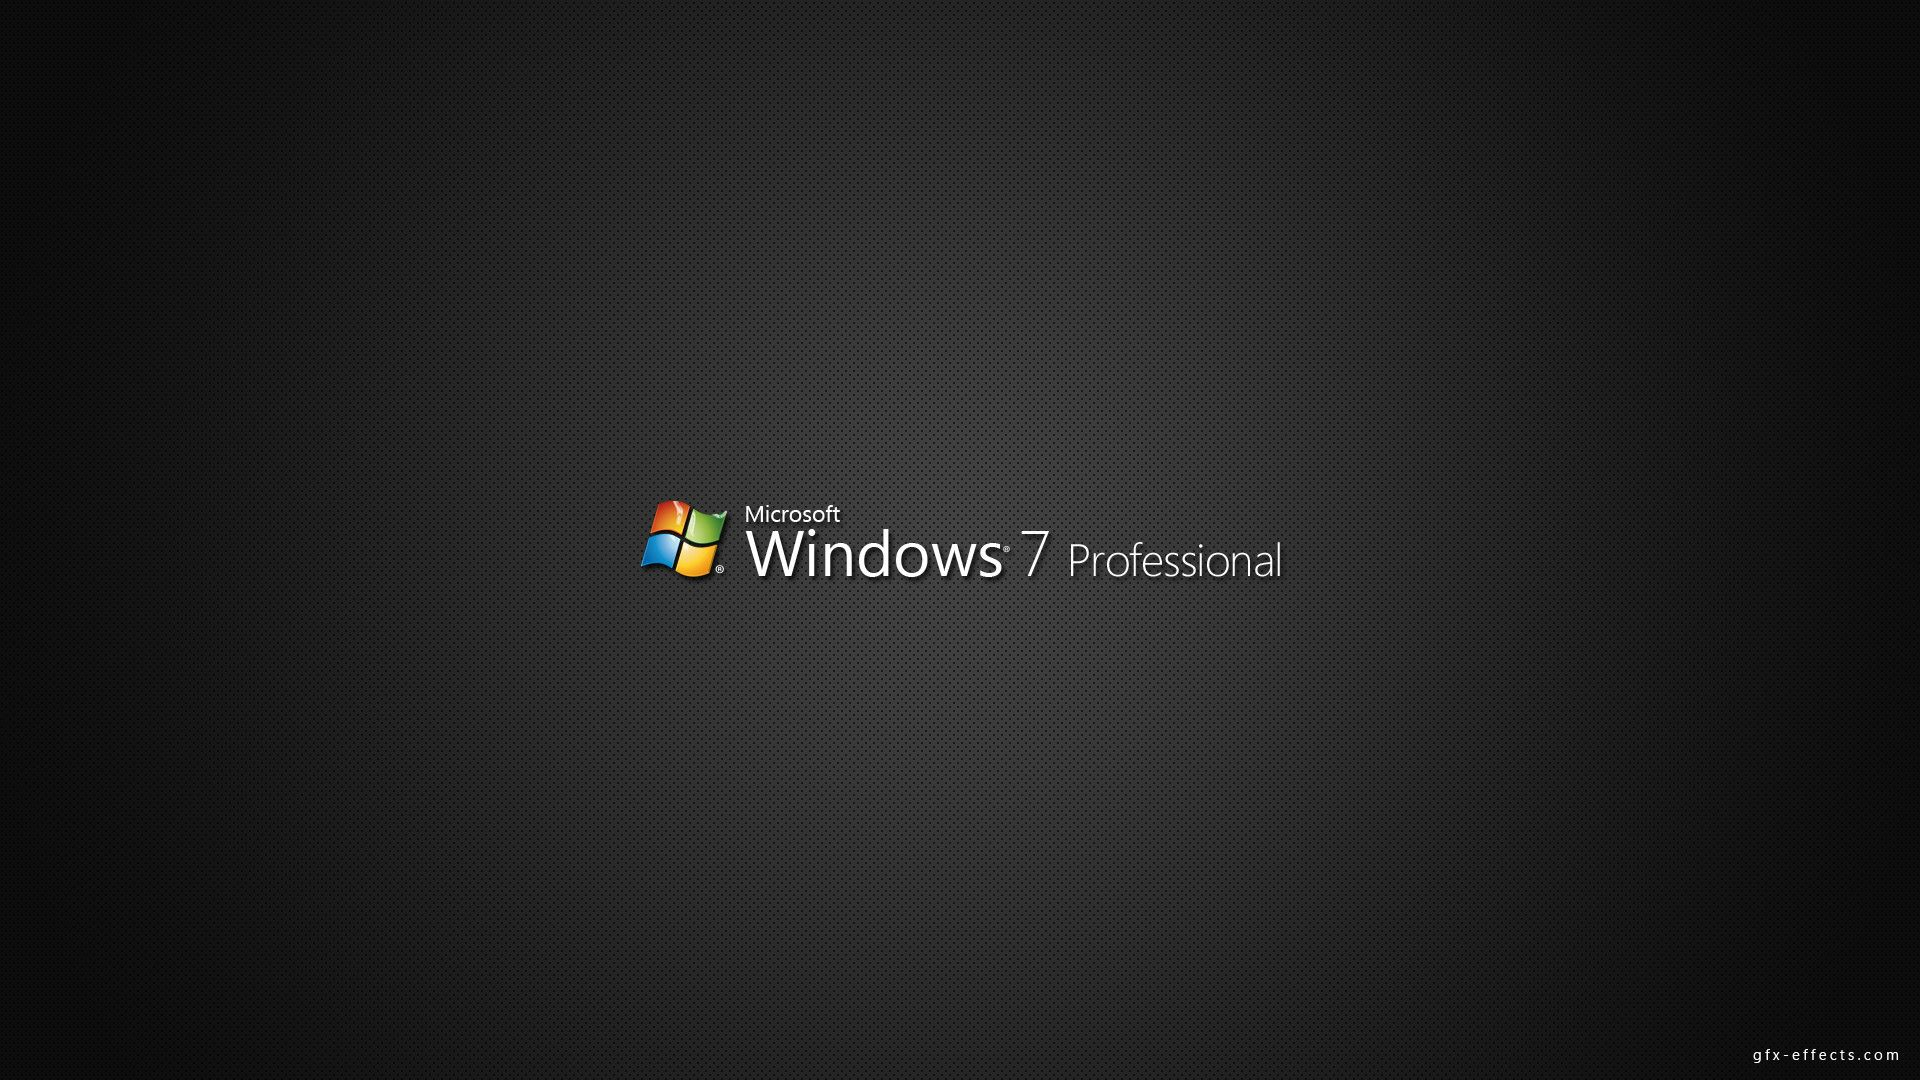 Windows 7 Ultimate Desktop Wallpaper Hd Archidev